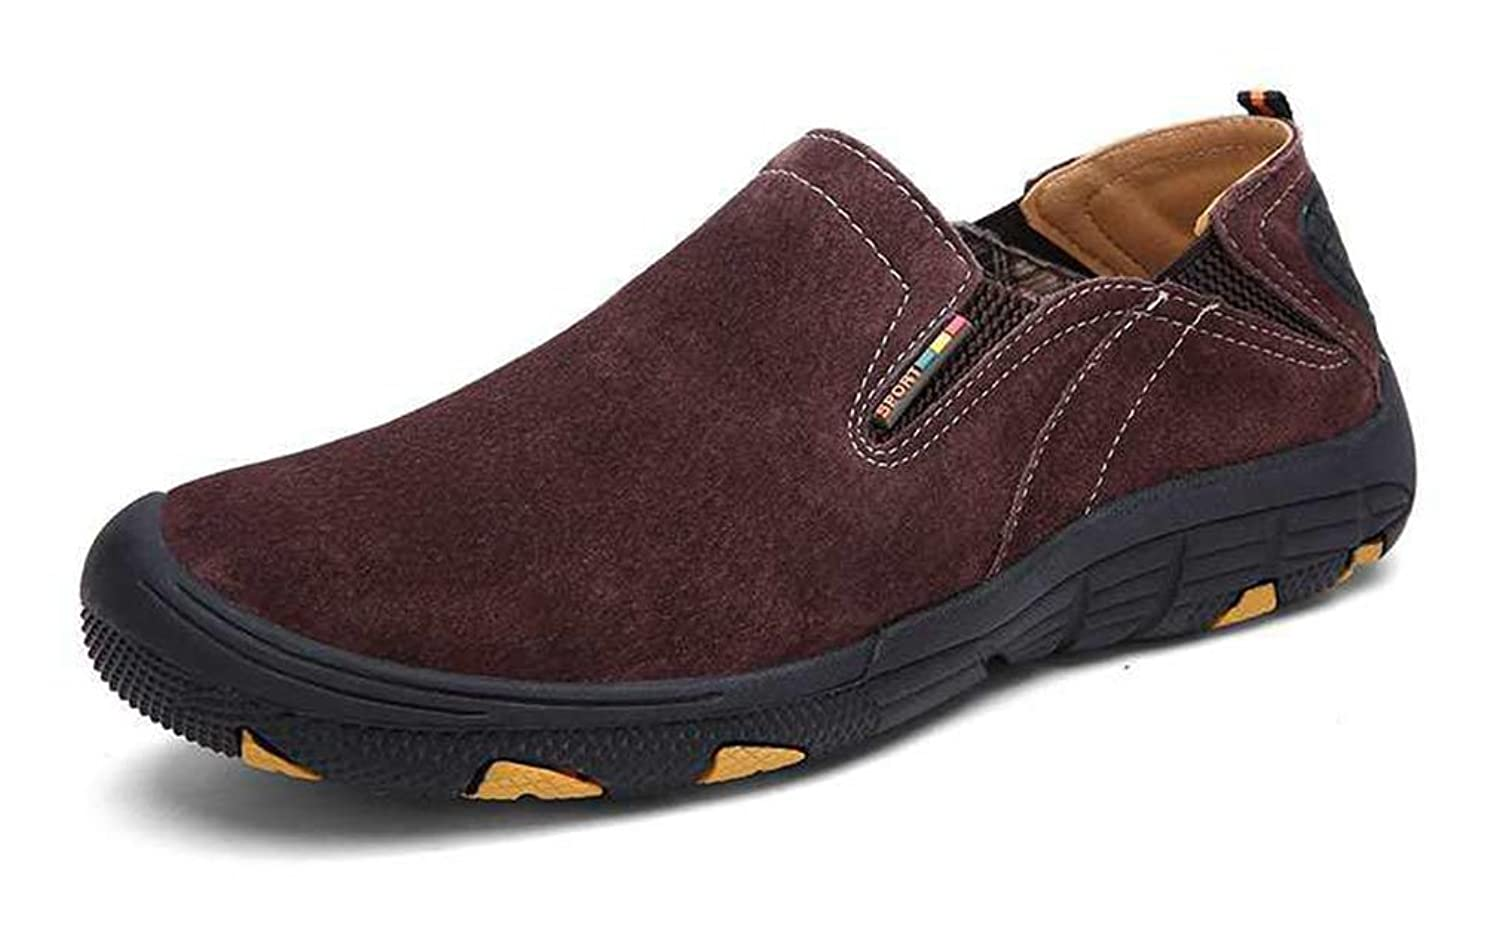 Men's Casual Slip On Shoes Lightweight Athletic Sports Hiking Boots